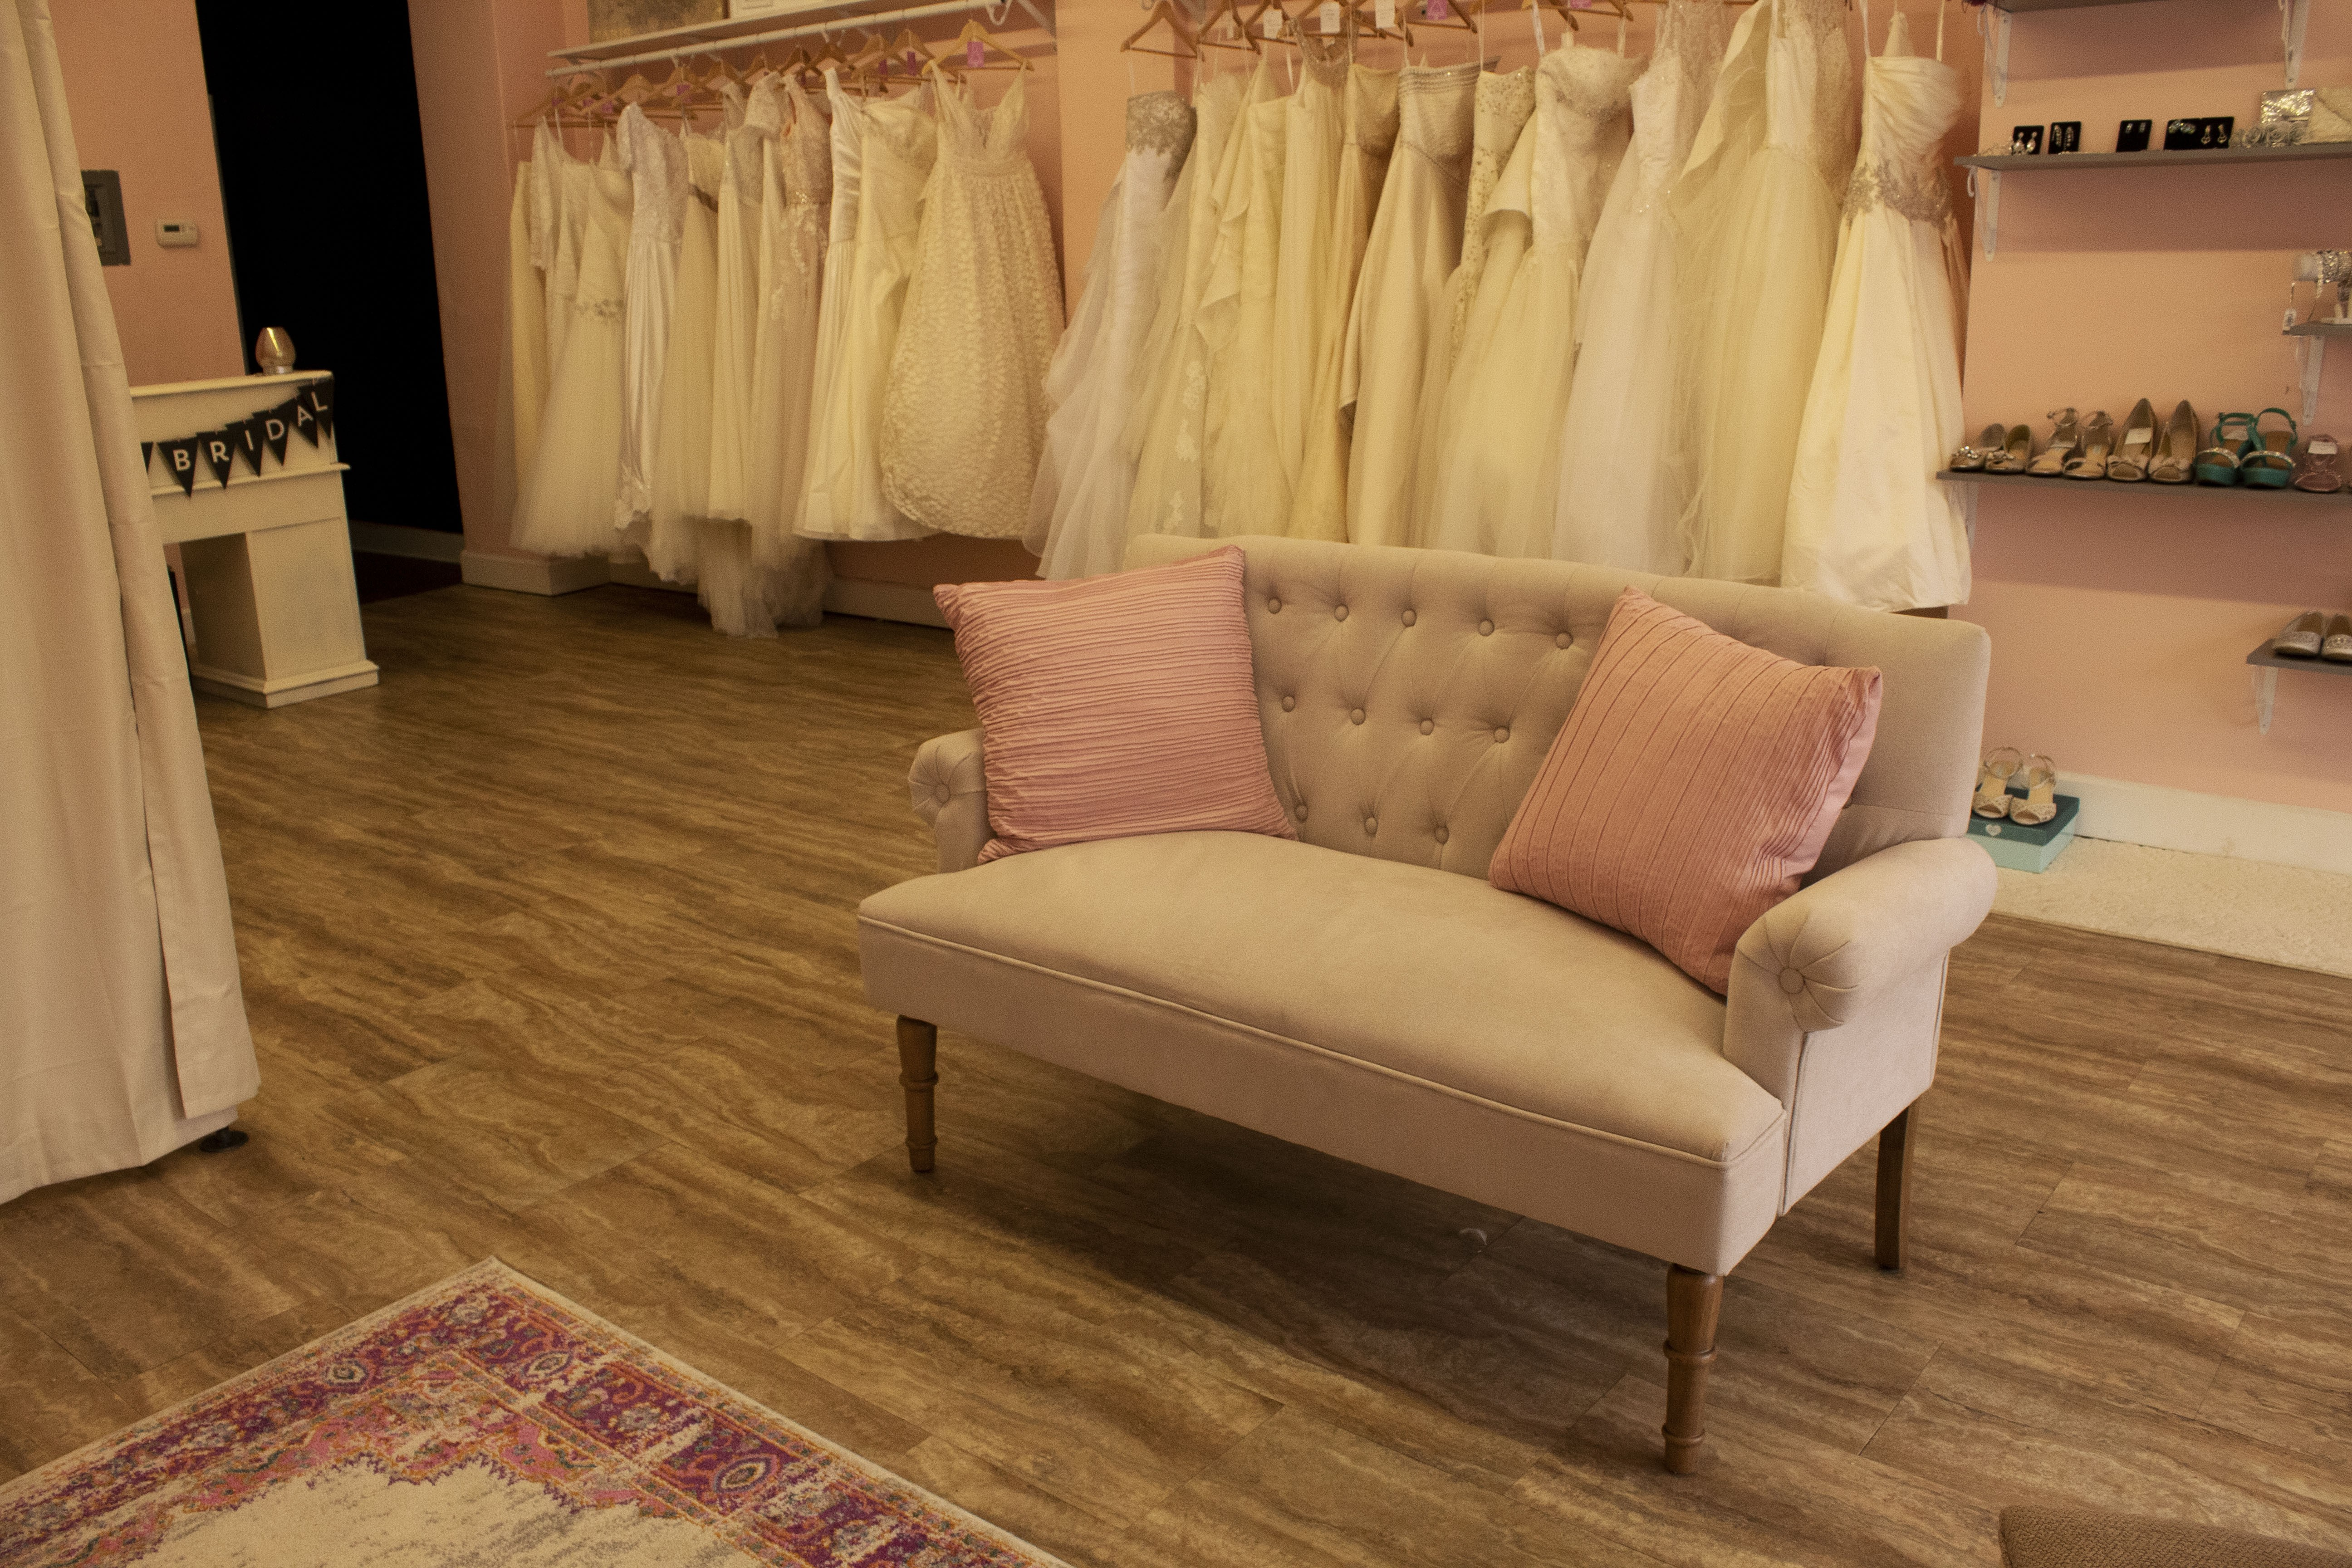 New B Free Bridal Boutique Brings Quality Second Hand Wedding Dresses To Lakewood Scene And Heard Scene S News Blog,Casual White Beach Wedding Dress